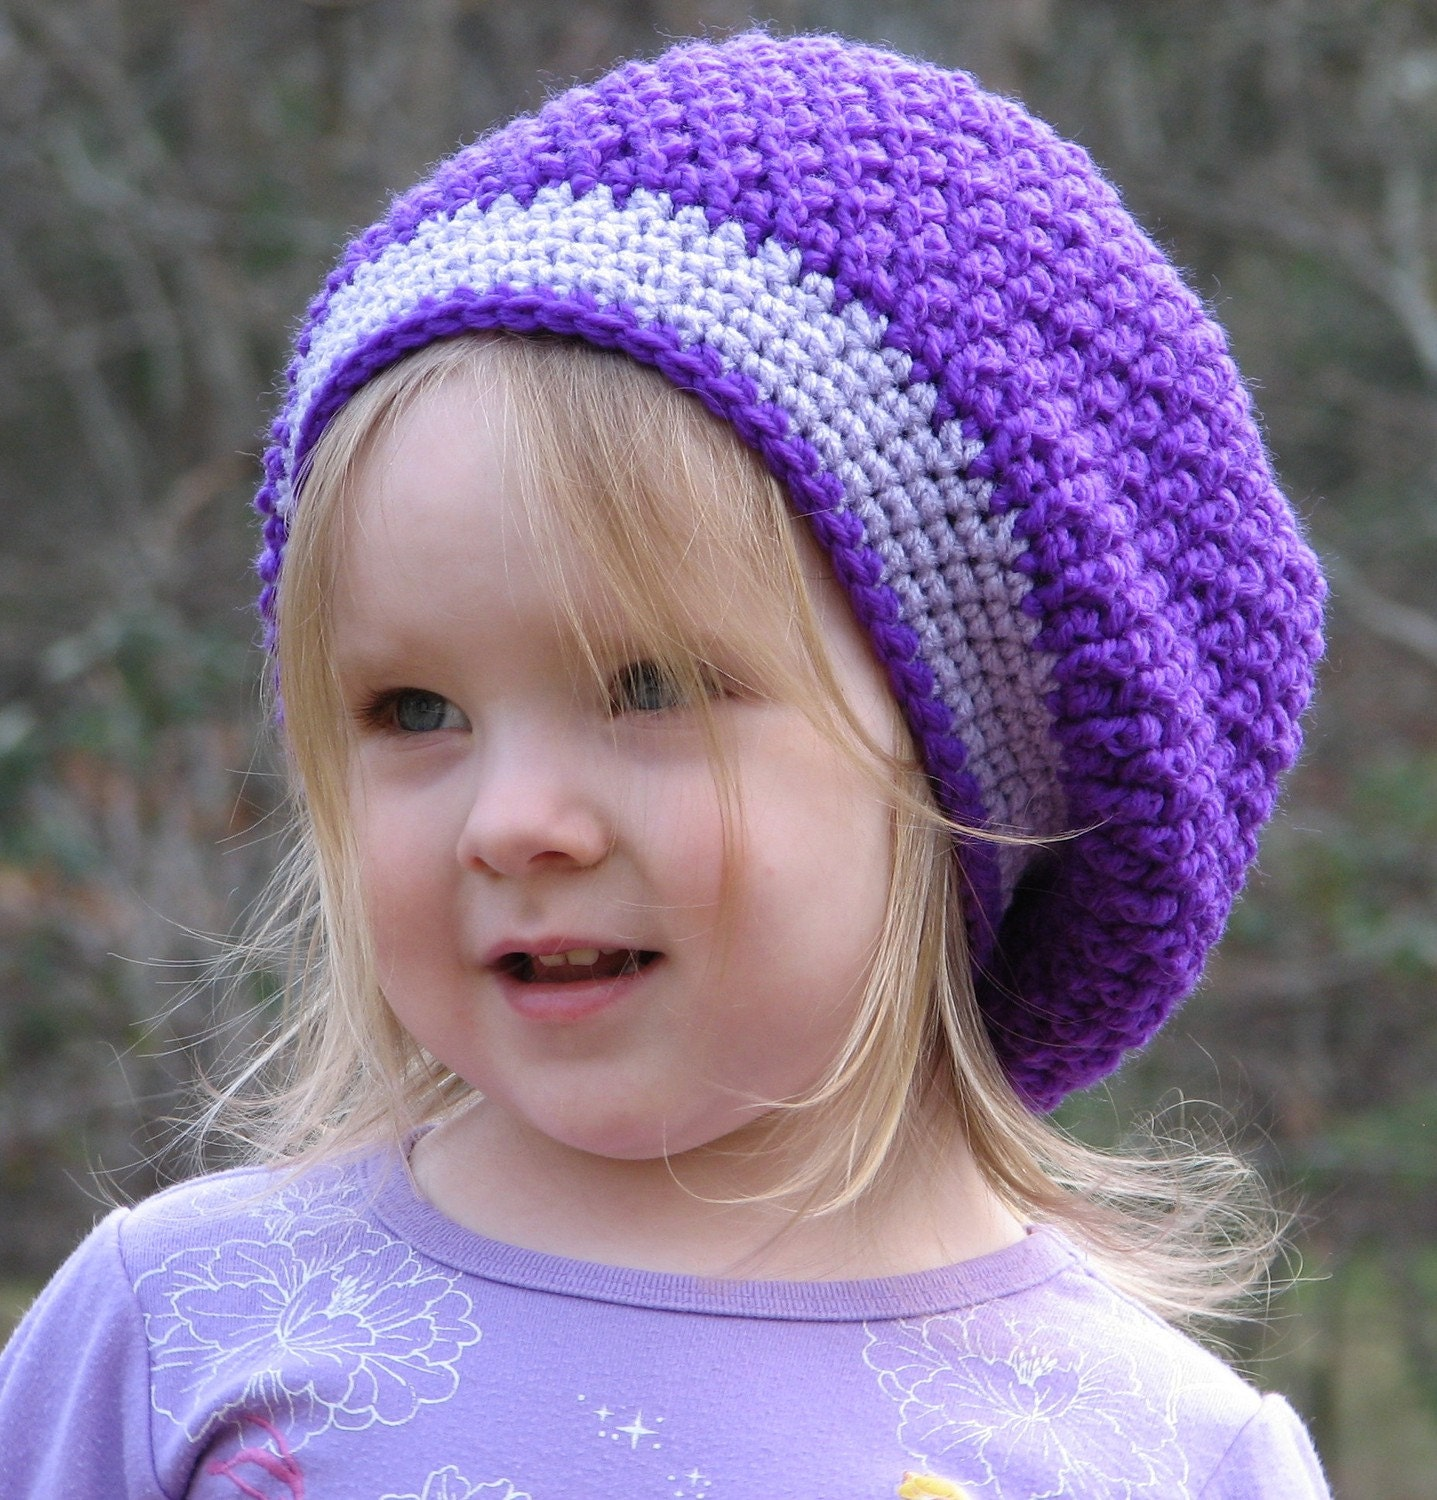 Slouchy Beret Toddler Beanie Crochet Pattern 3 sizes included PDF 034 Permission to Sell Finished Items